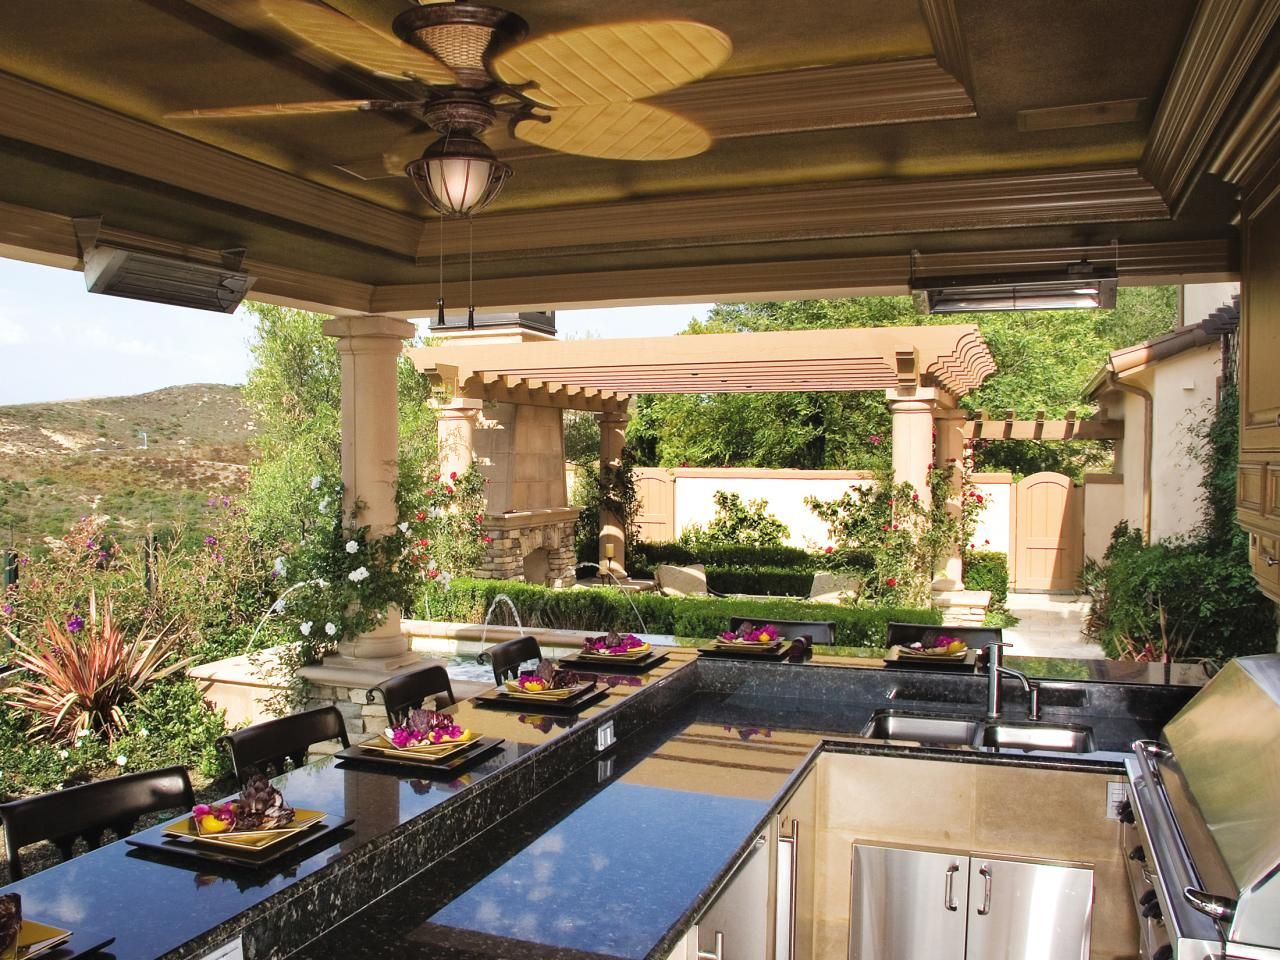 Pictures Of Outdoor Kitchen Design Ideas & Inspiration Amusing Outdoor Kitchens And Patios Designs Decorating Design